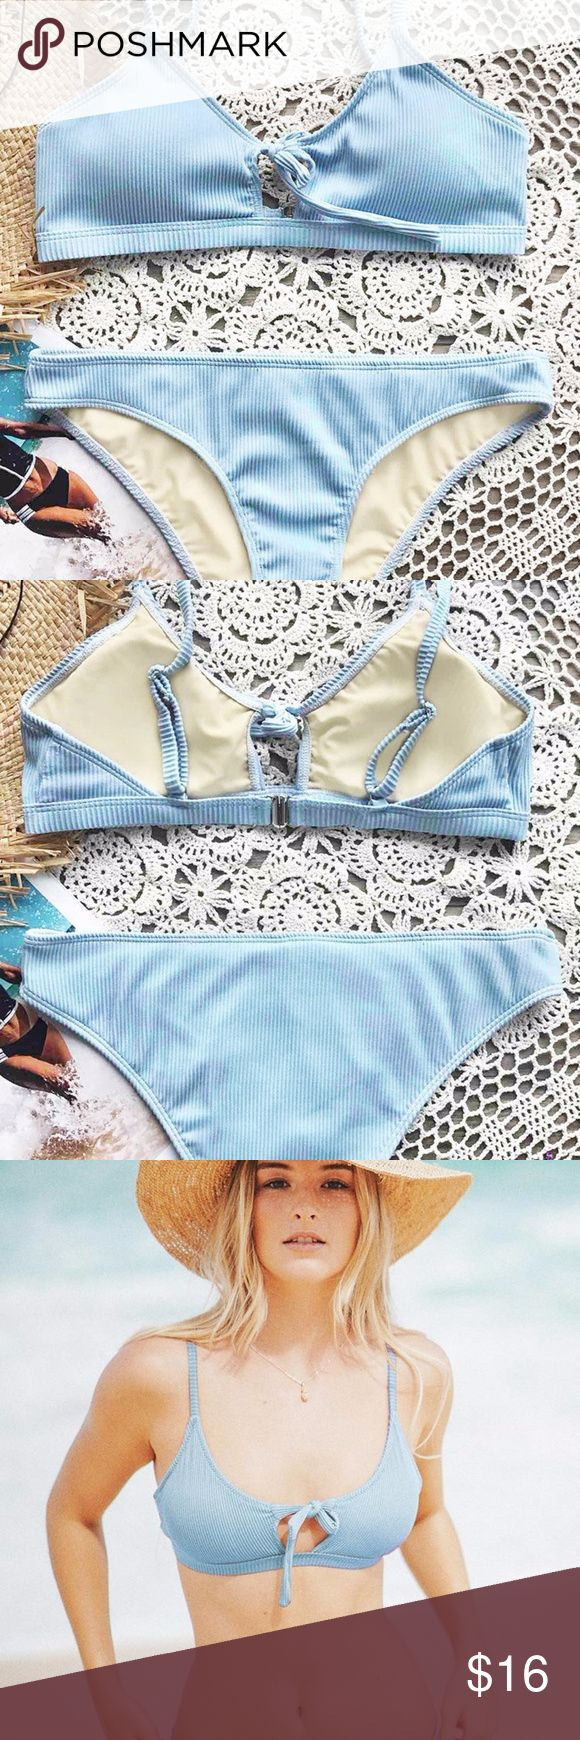 Blue Fluffy Cloud Tie Bikini Set A cute baby blue bikini with a front tie. The bikini features adjustable shoulder straps, a back hook closure and a padding bra. The bikini is double-layered with a special Chinlon, Elastane fabric. Both top & bottom are size small. Swim Bikinis